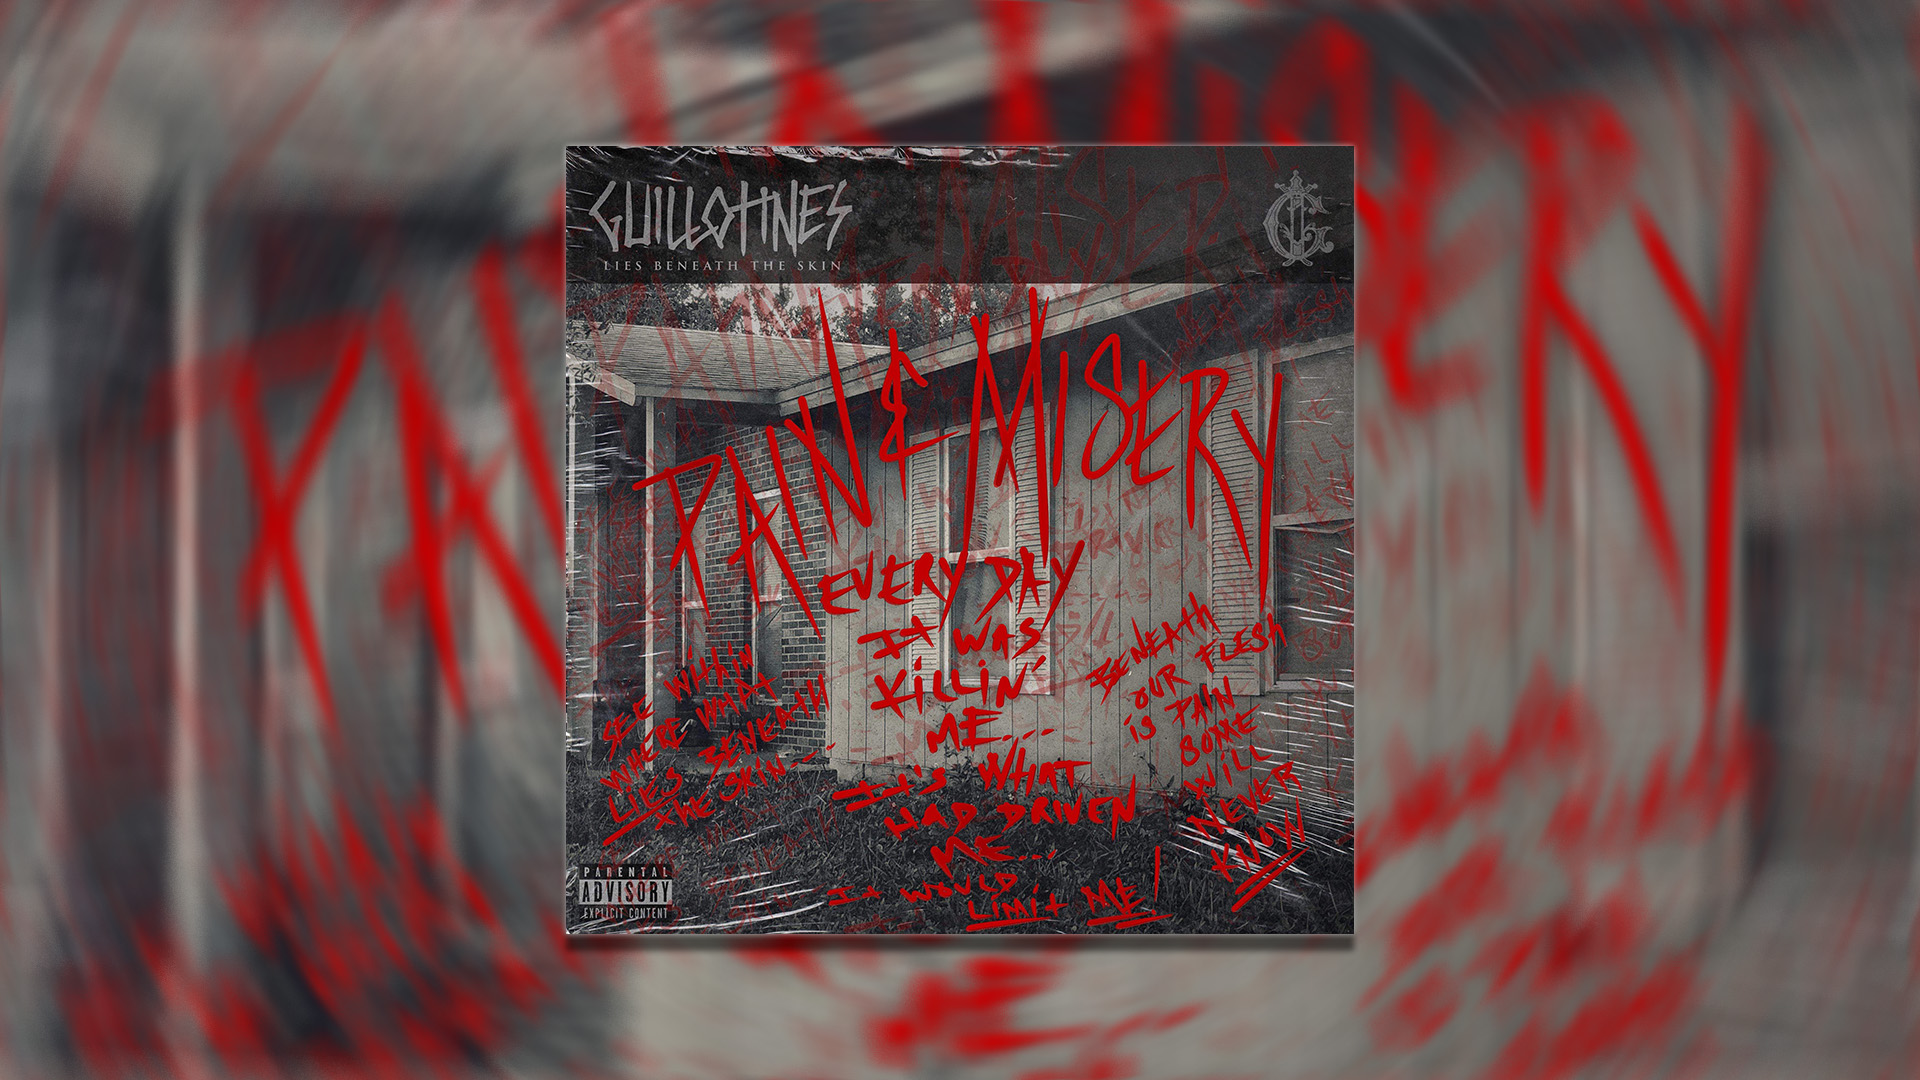 """TRACK ANALYSIS: GUILLOTINES – """"LIES BENEATH THE SKIN""""; FOR FANS OF HATEBREED AND BIGGIE SMALLS"""